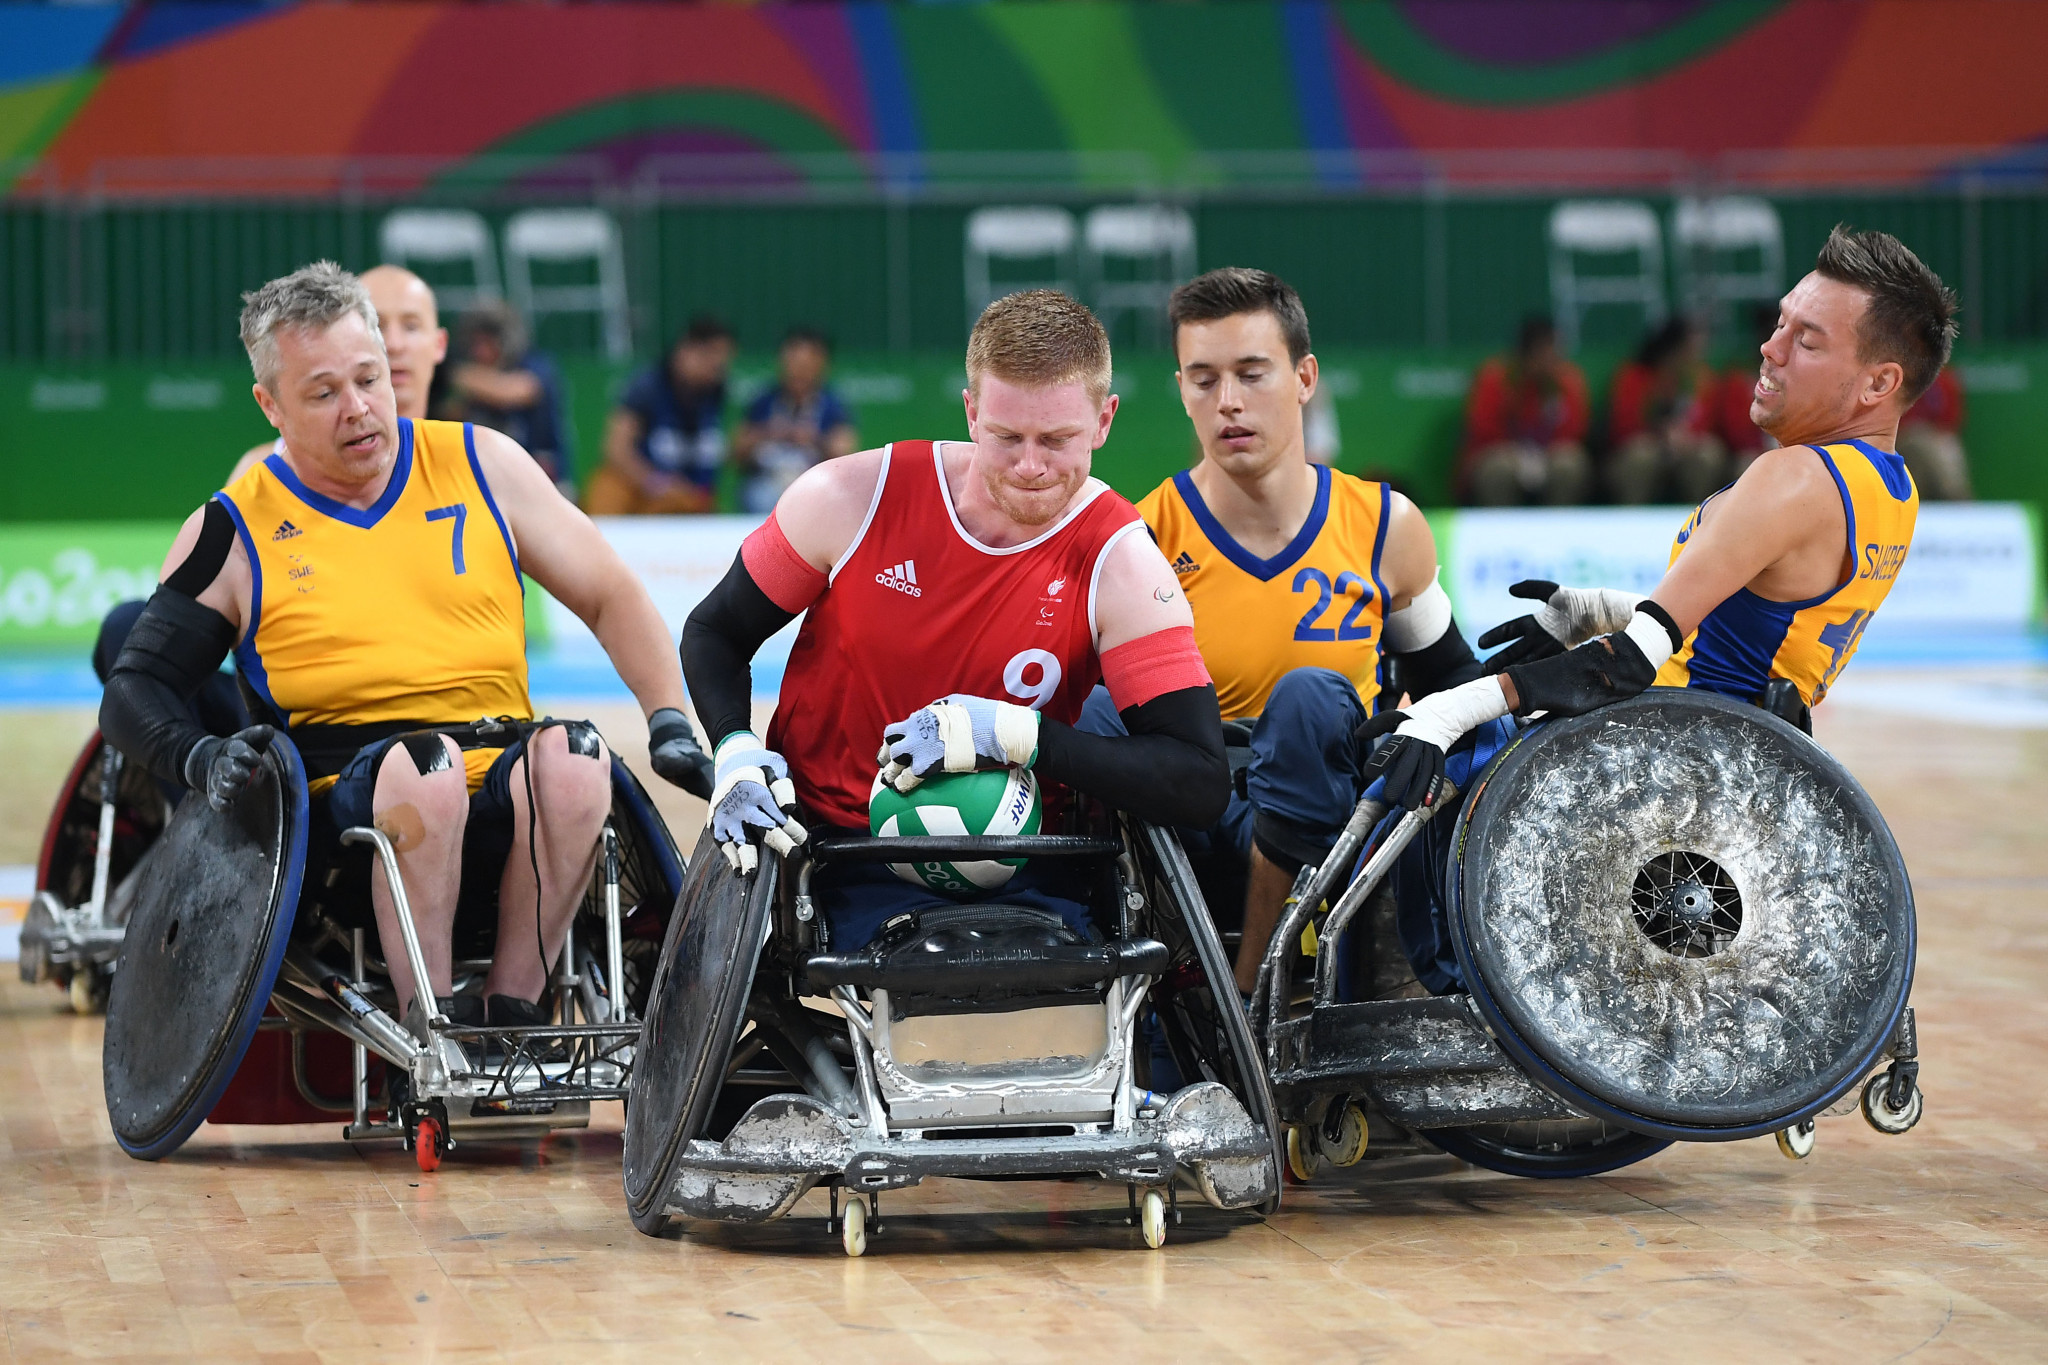 IWRF President credits World Rugby partnership with growing the organisation